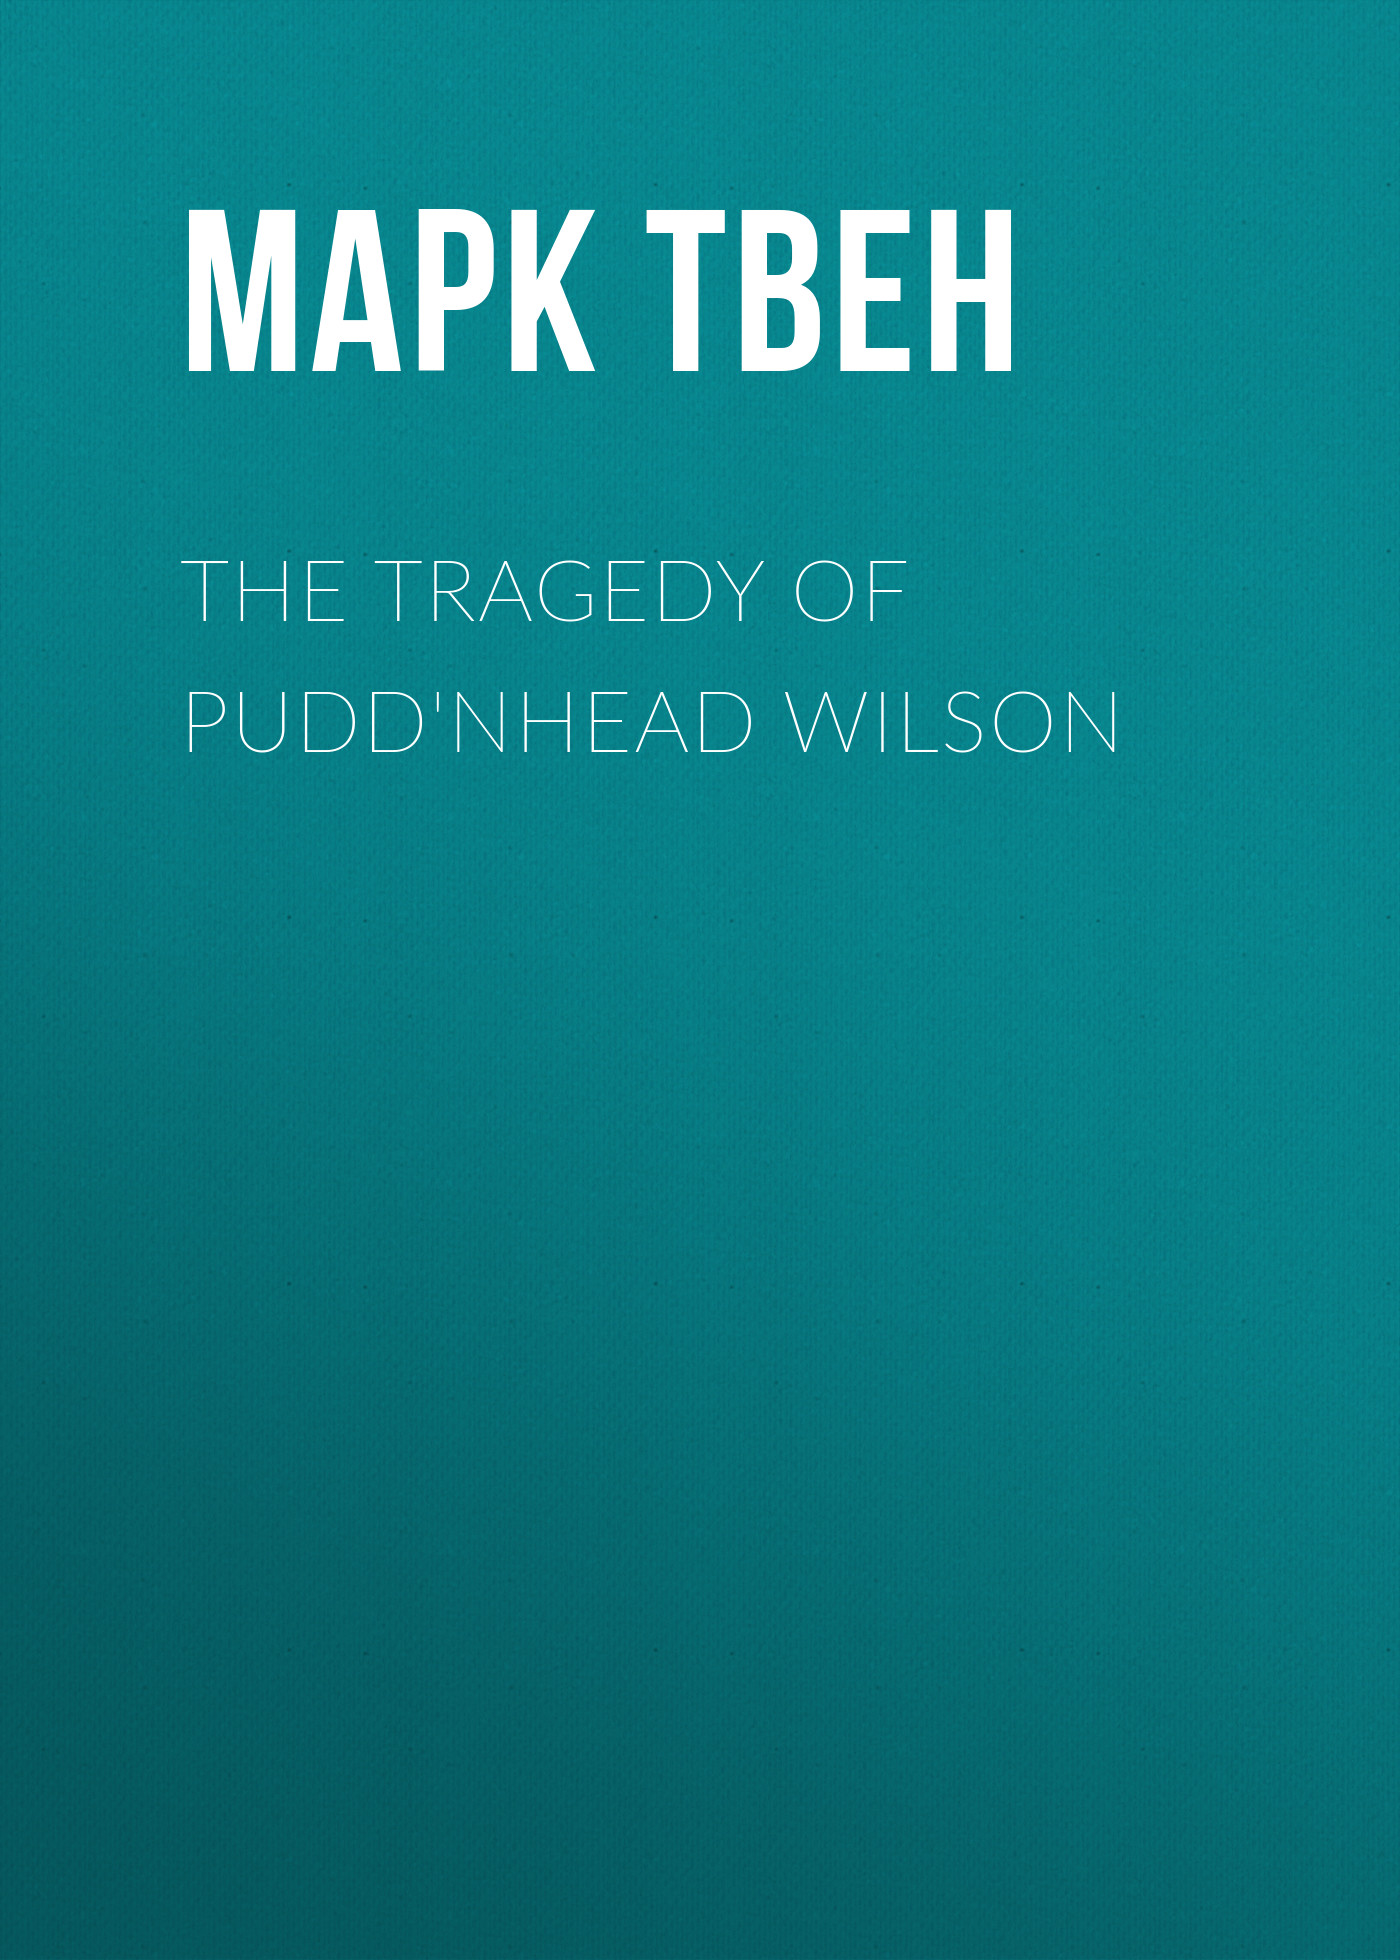 Марк Твен The Tragedy of Pudd'nhead Wilson марк бойков 泰坦尼克之复活 возвращение титаника resurrection of titanic